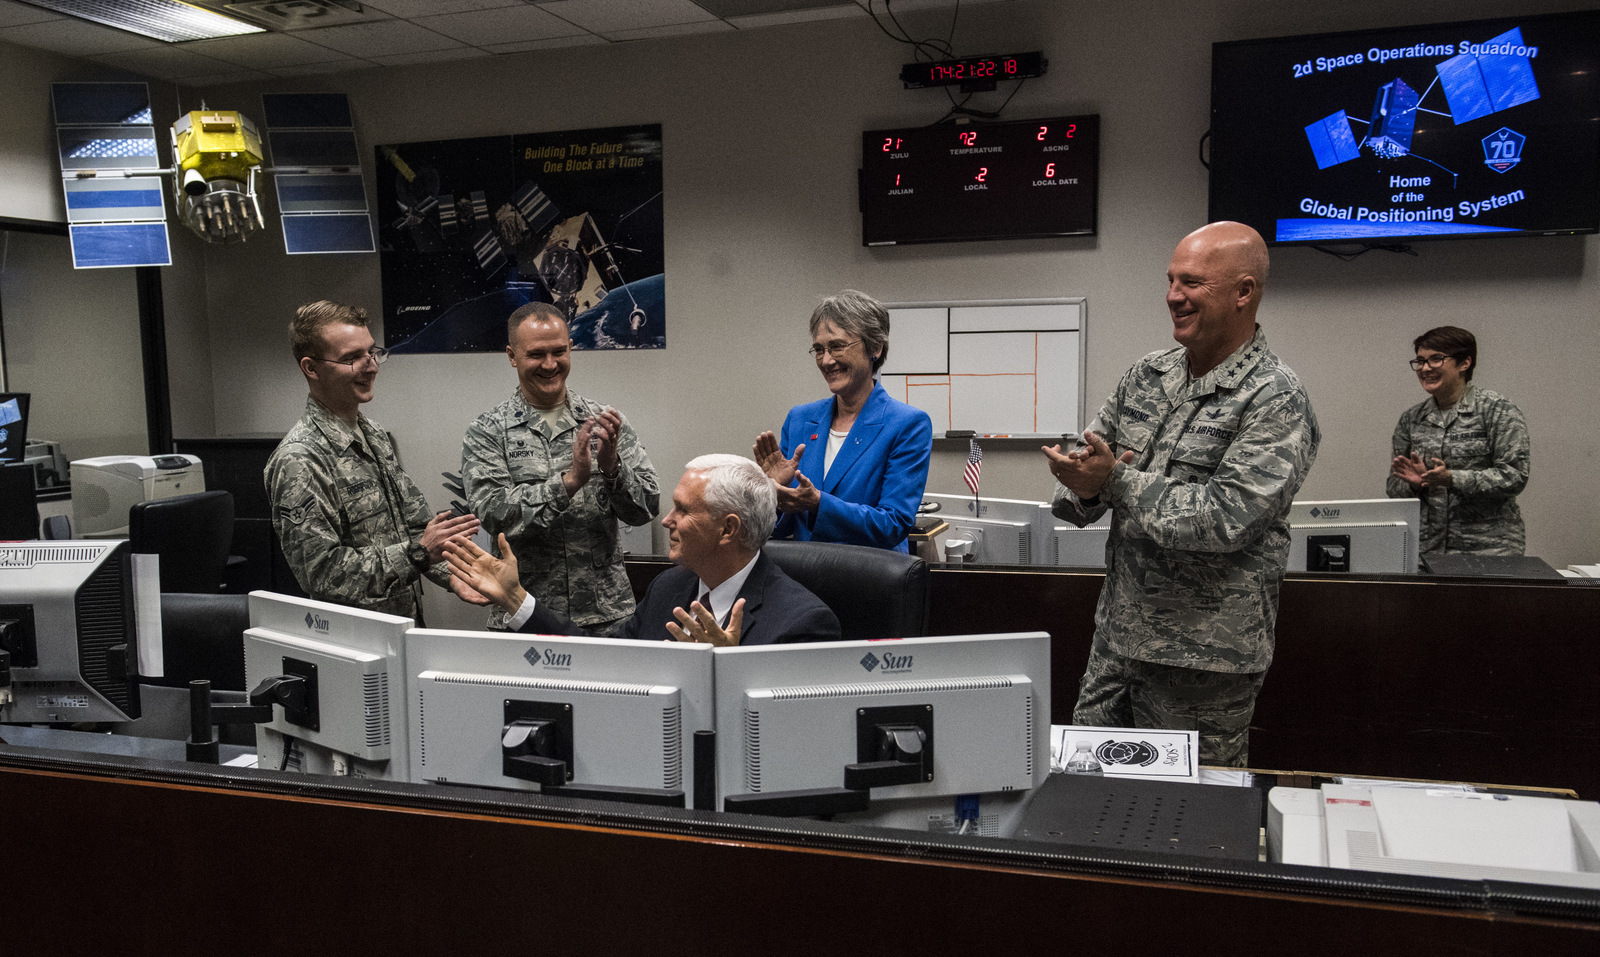 Vice President Mike Pence learns how to send a command to a satellite dish while touring the 2d Space Operations Squadron, Home of the Global Positioning System, at Schriever Air Force Base Friday, June 23, 2017, during his visit to Colorado Springs, Colo. (Christian Murdock/The Gazette via AP)